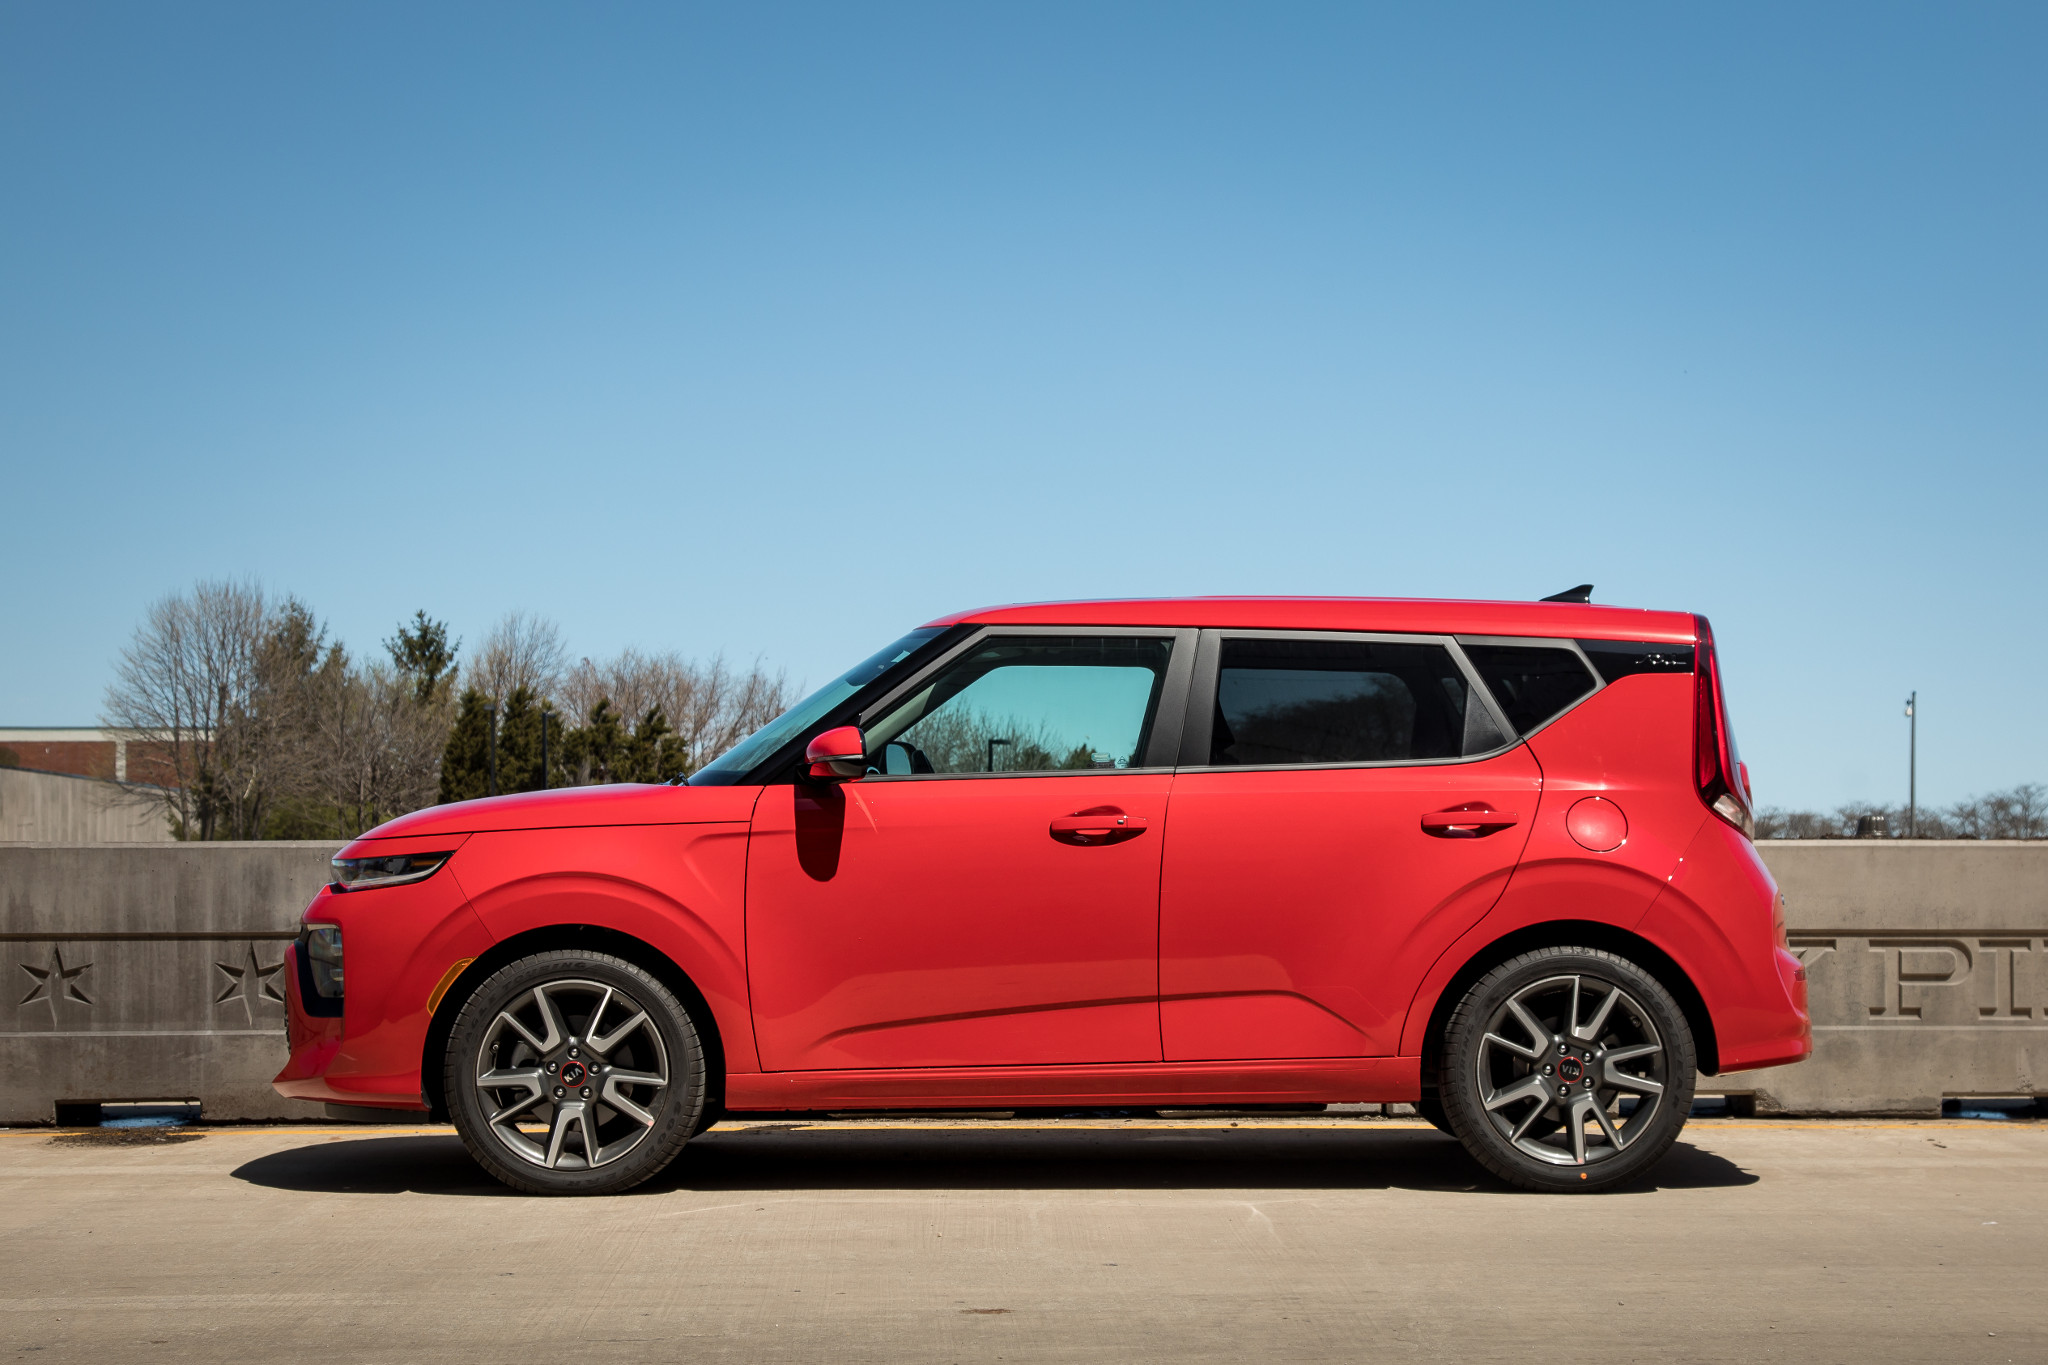 03-kia-soul-2020-exterior--profile--red--urban.jpg